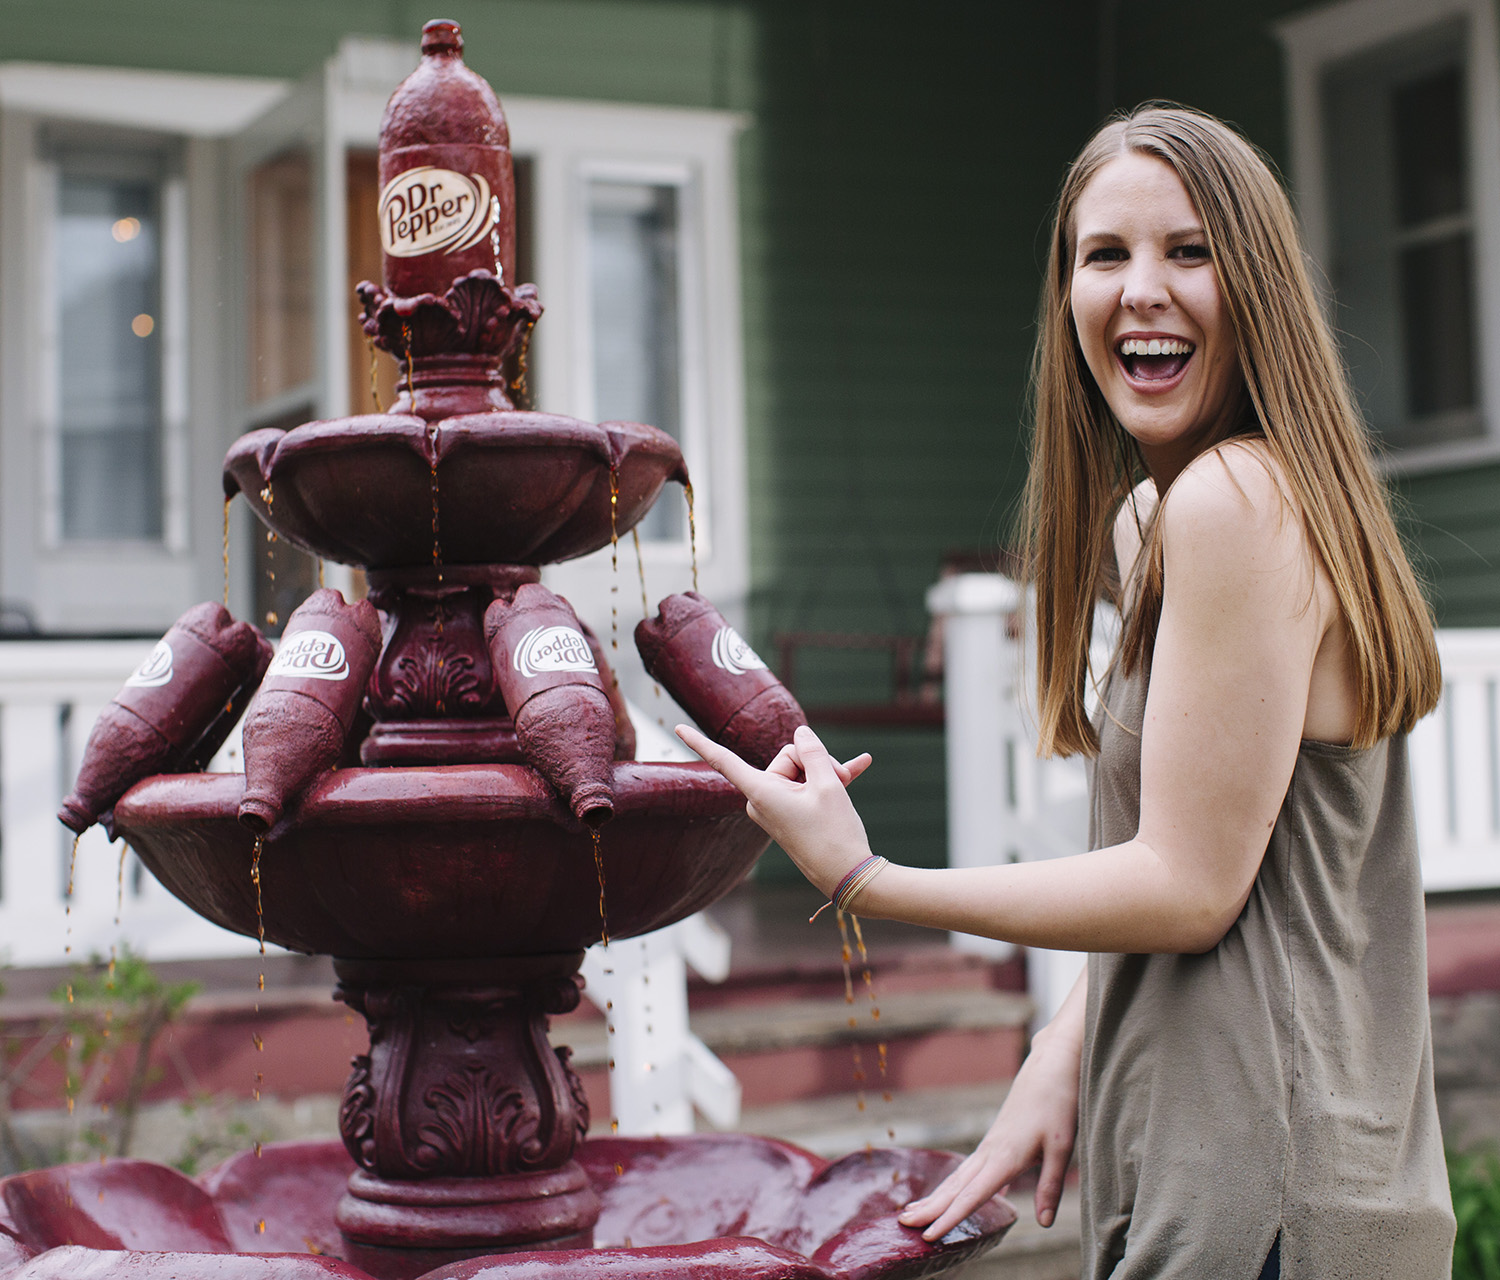 Dr. Pepper surprises college student with 'soda fountain'